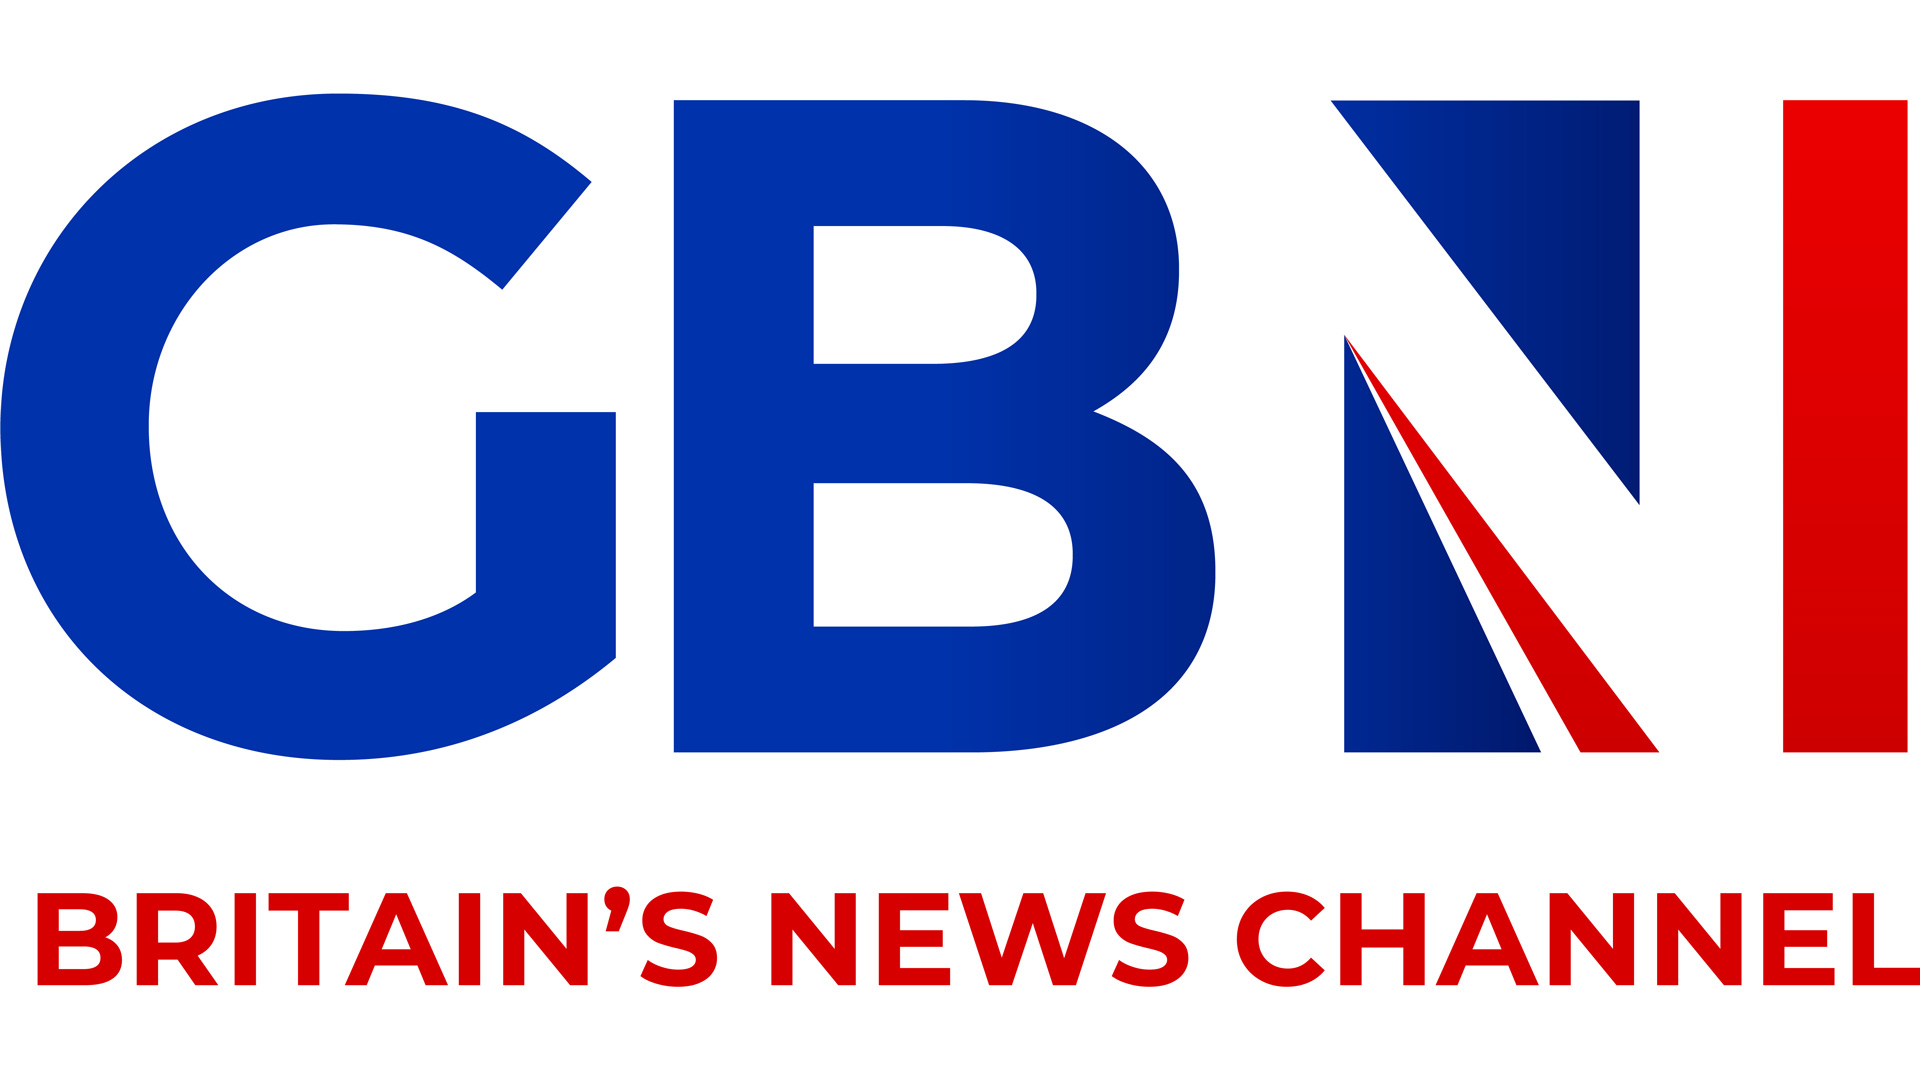 GB News is set to launch later this year on Sky, Freeview, Virgin Media and Freesat.